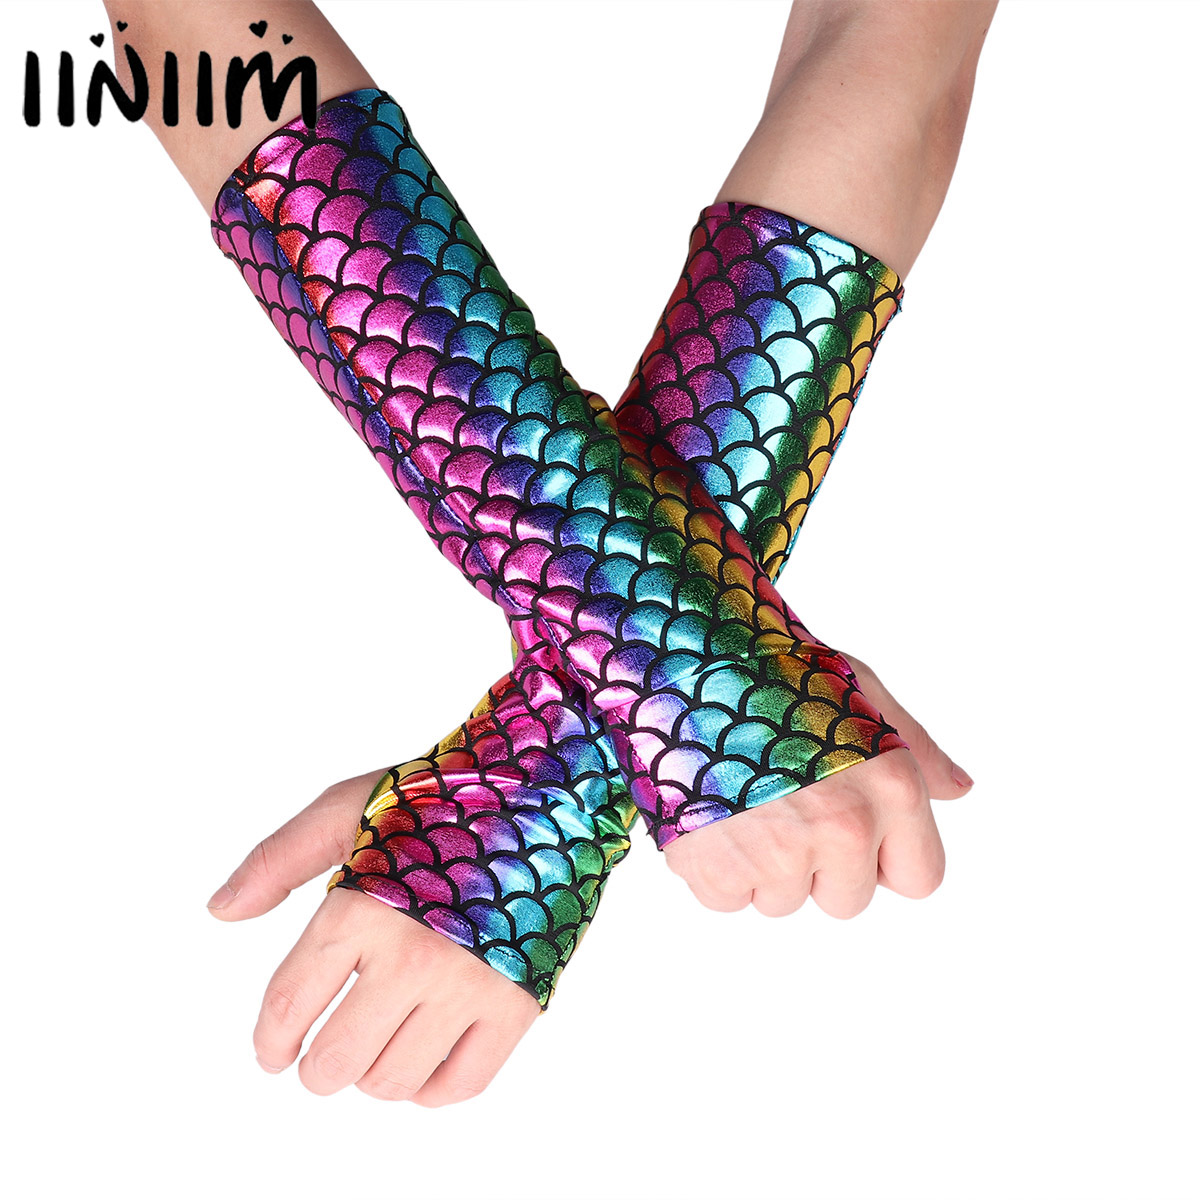 Iiniim Adult Mermaid Fish Scale Pattern Dance Clubwear Fingerless Long Gloves Arm Sleeves Adult Halloween Costume Accessories